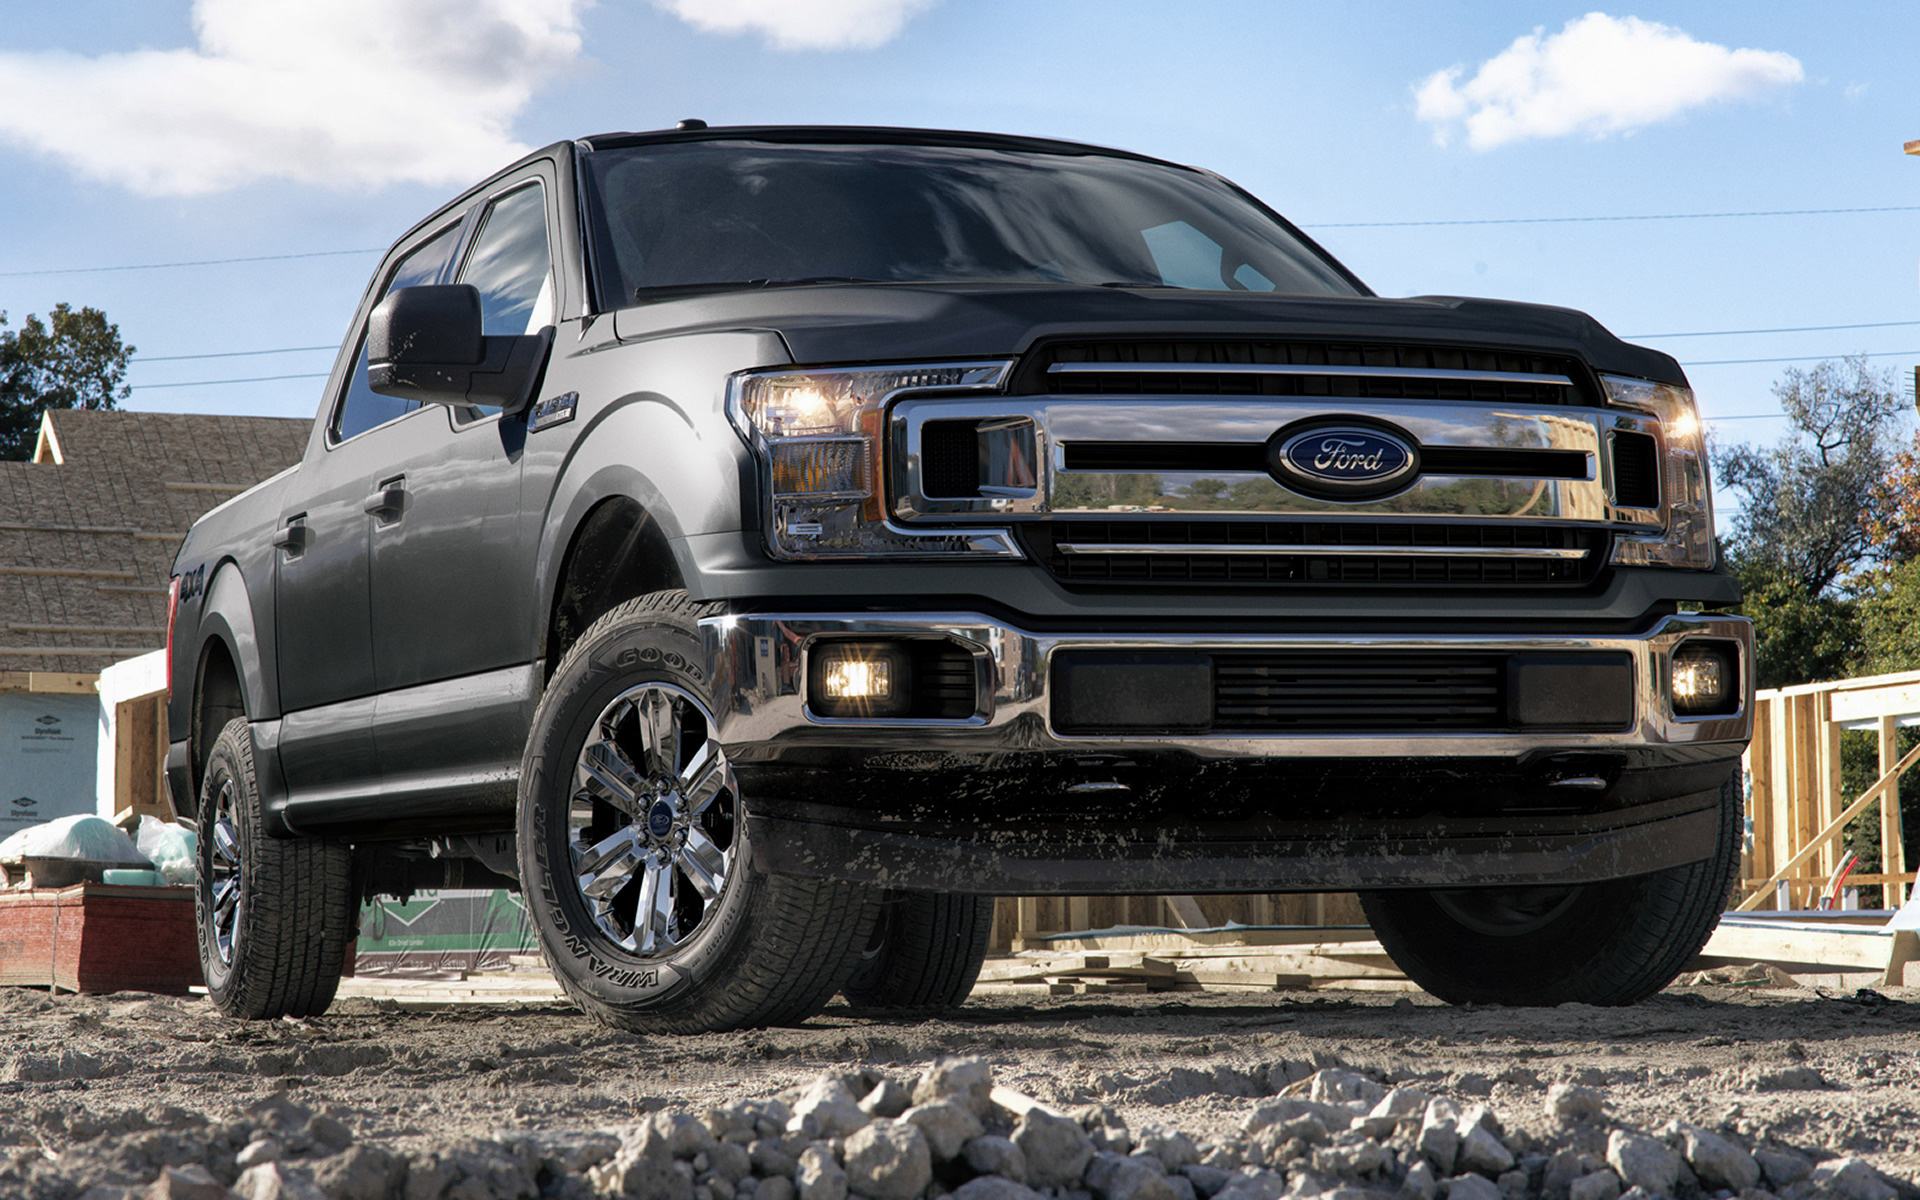 2017 Ford F 150 Lariat >> 2018 Ford F-150 XLT SuperCrew - Wallpapers and HD Images | Car Pixel